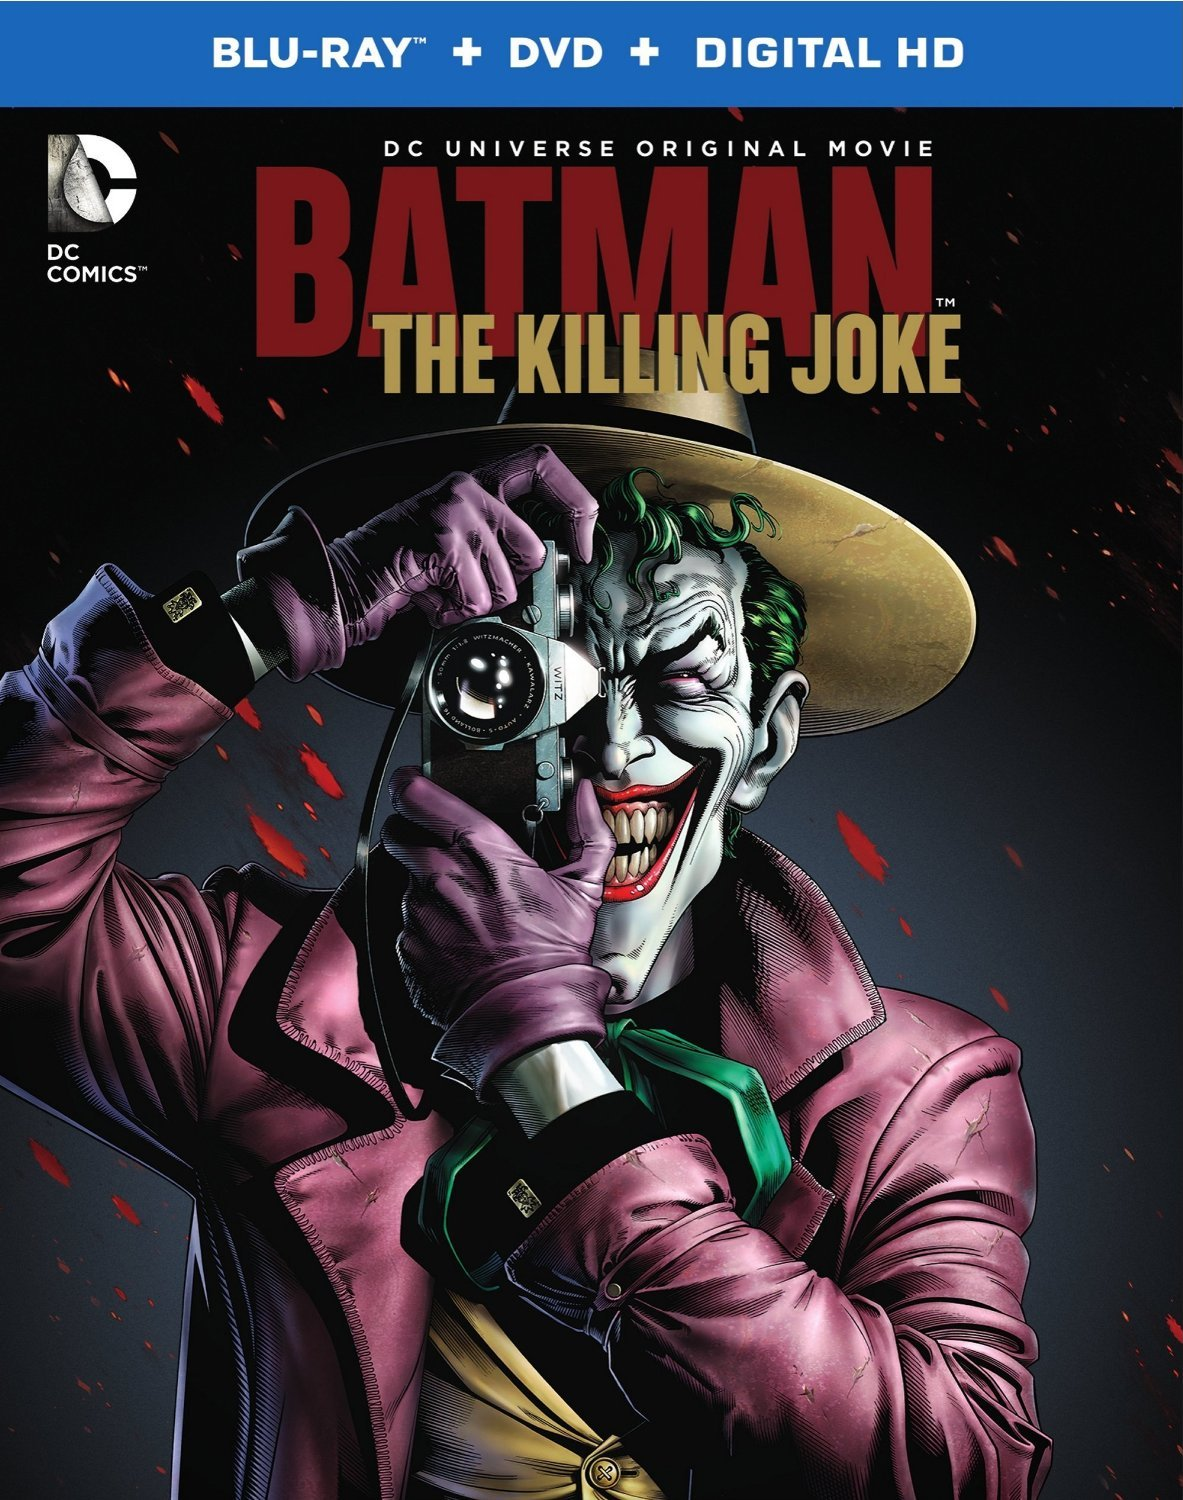 batman-killing-joke-box-art-181456